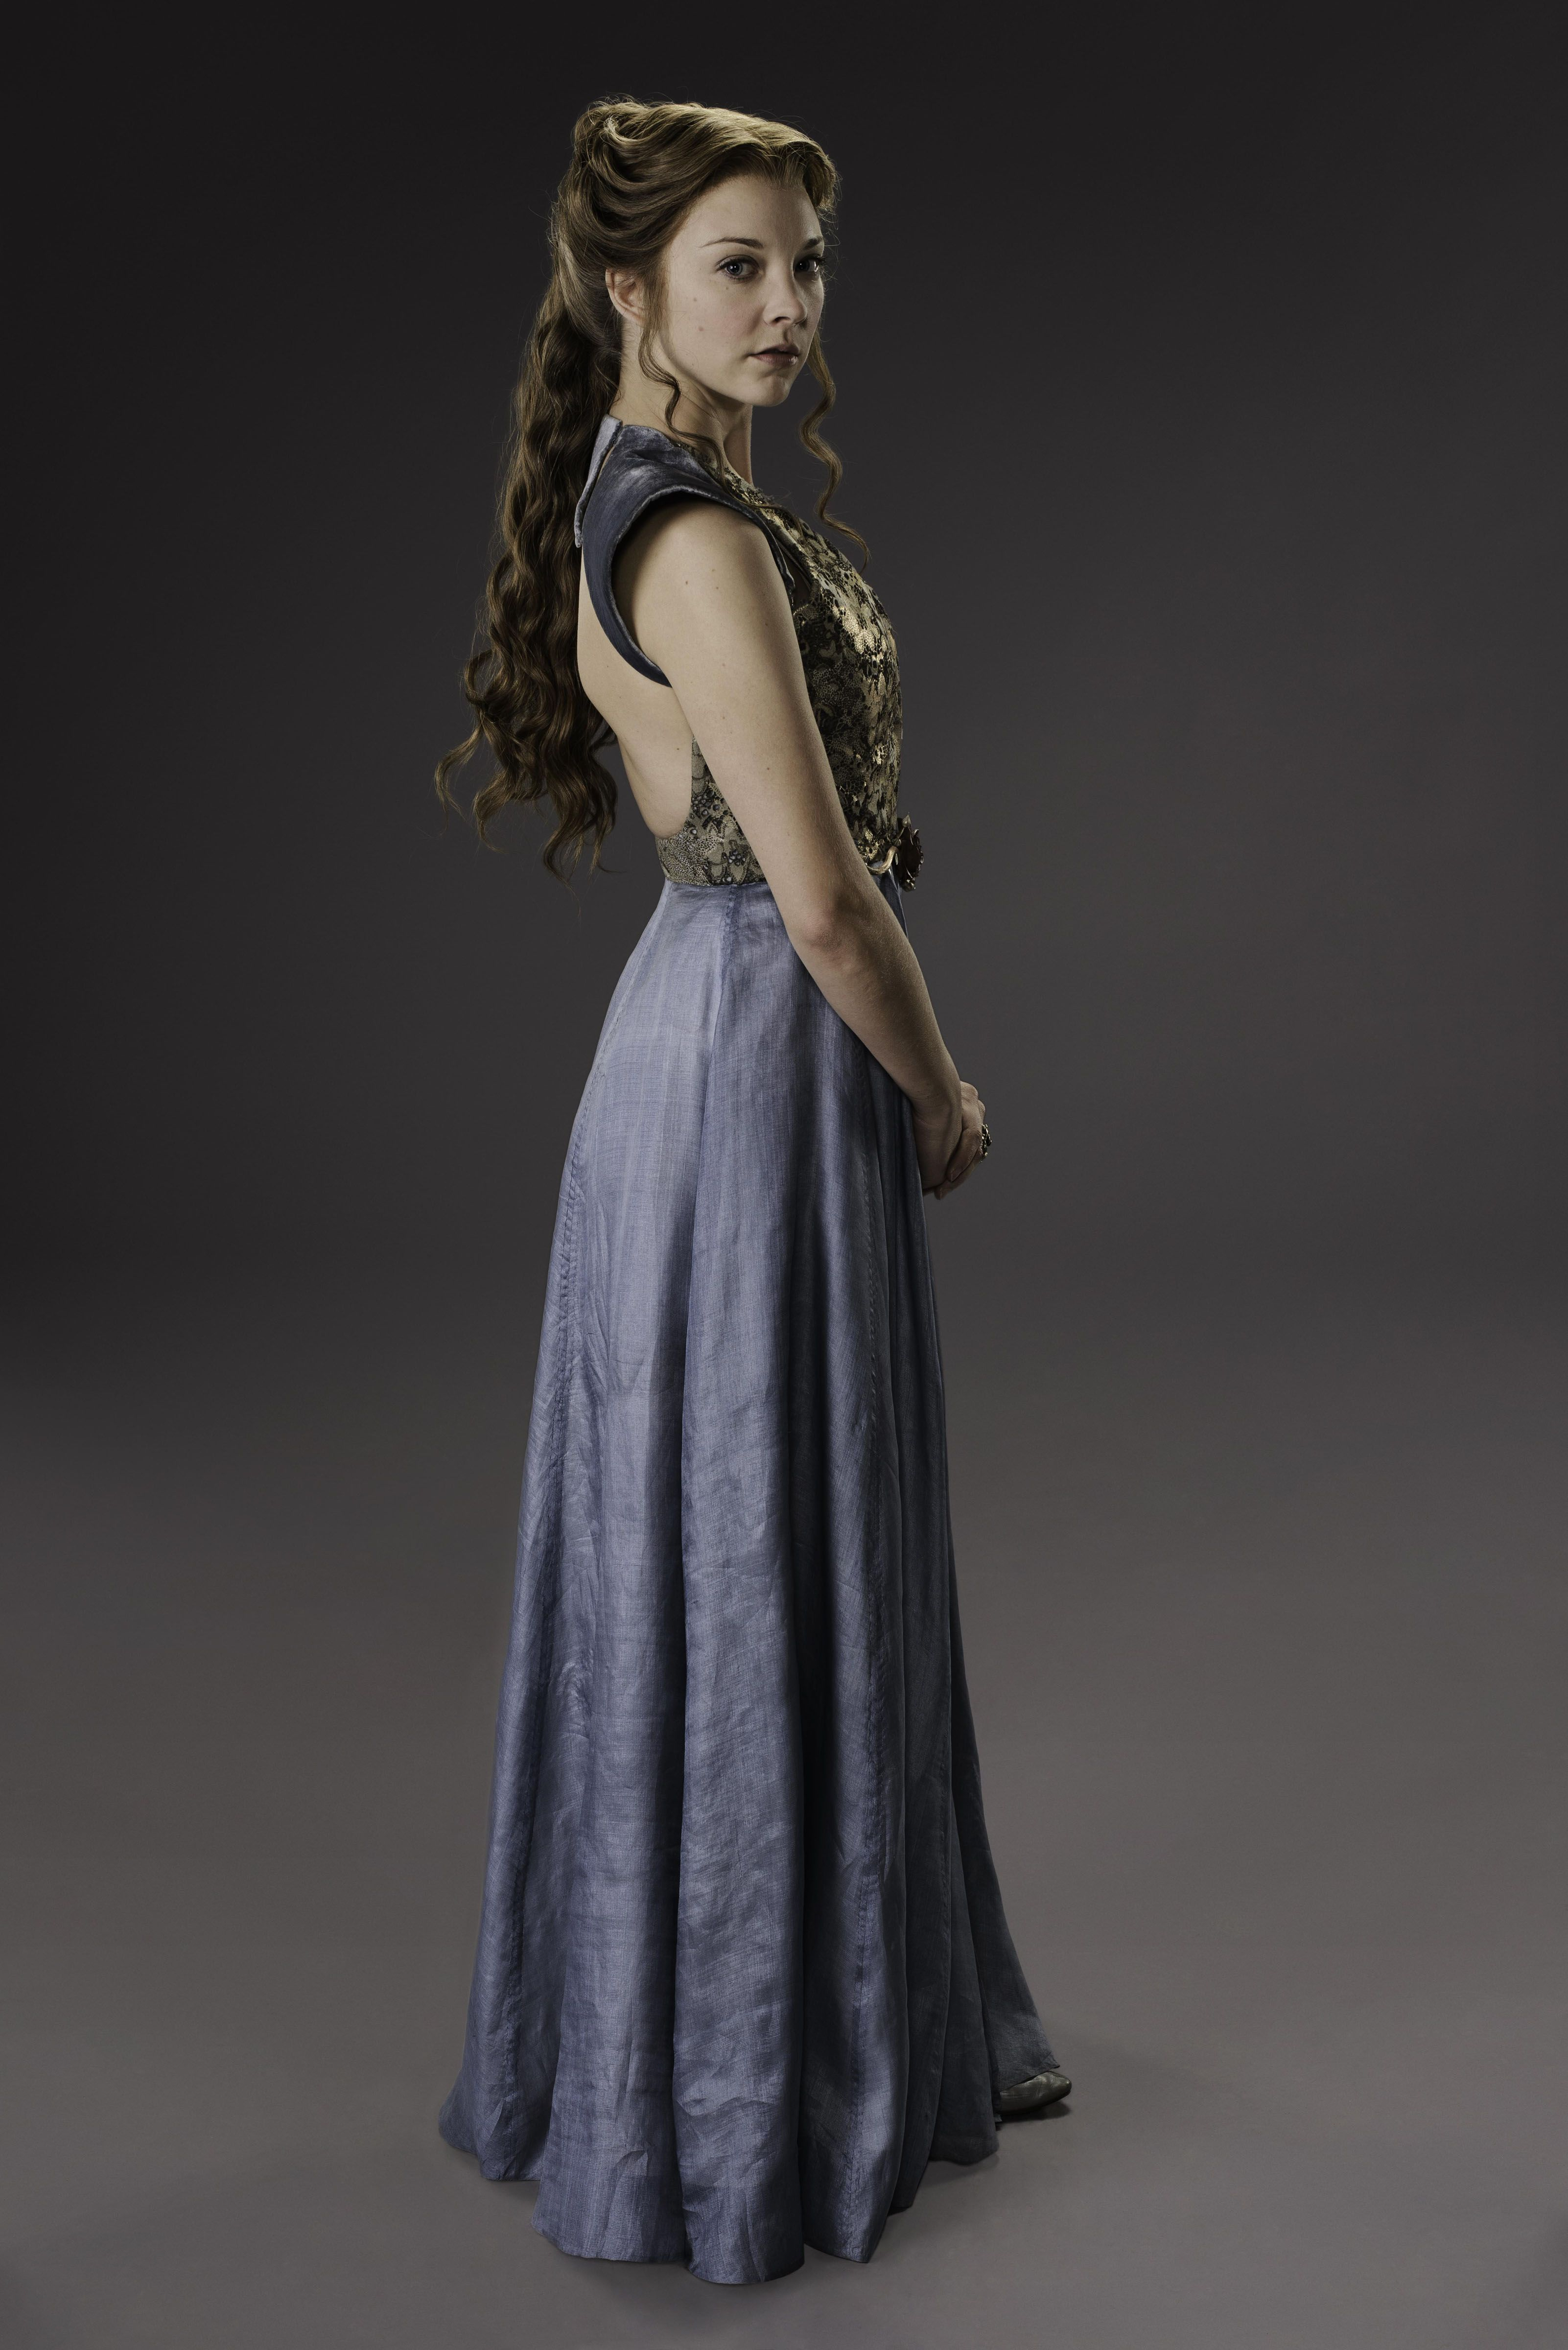 Actor Natalie Dormer who plays Margaery Tyrell in Game of